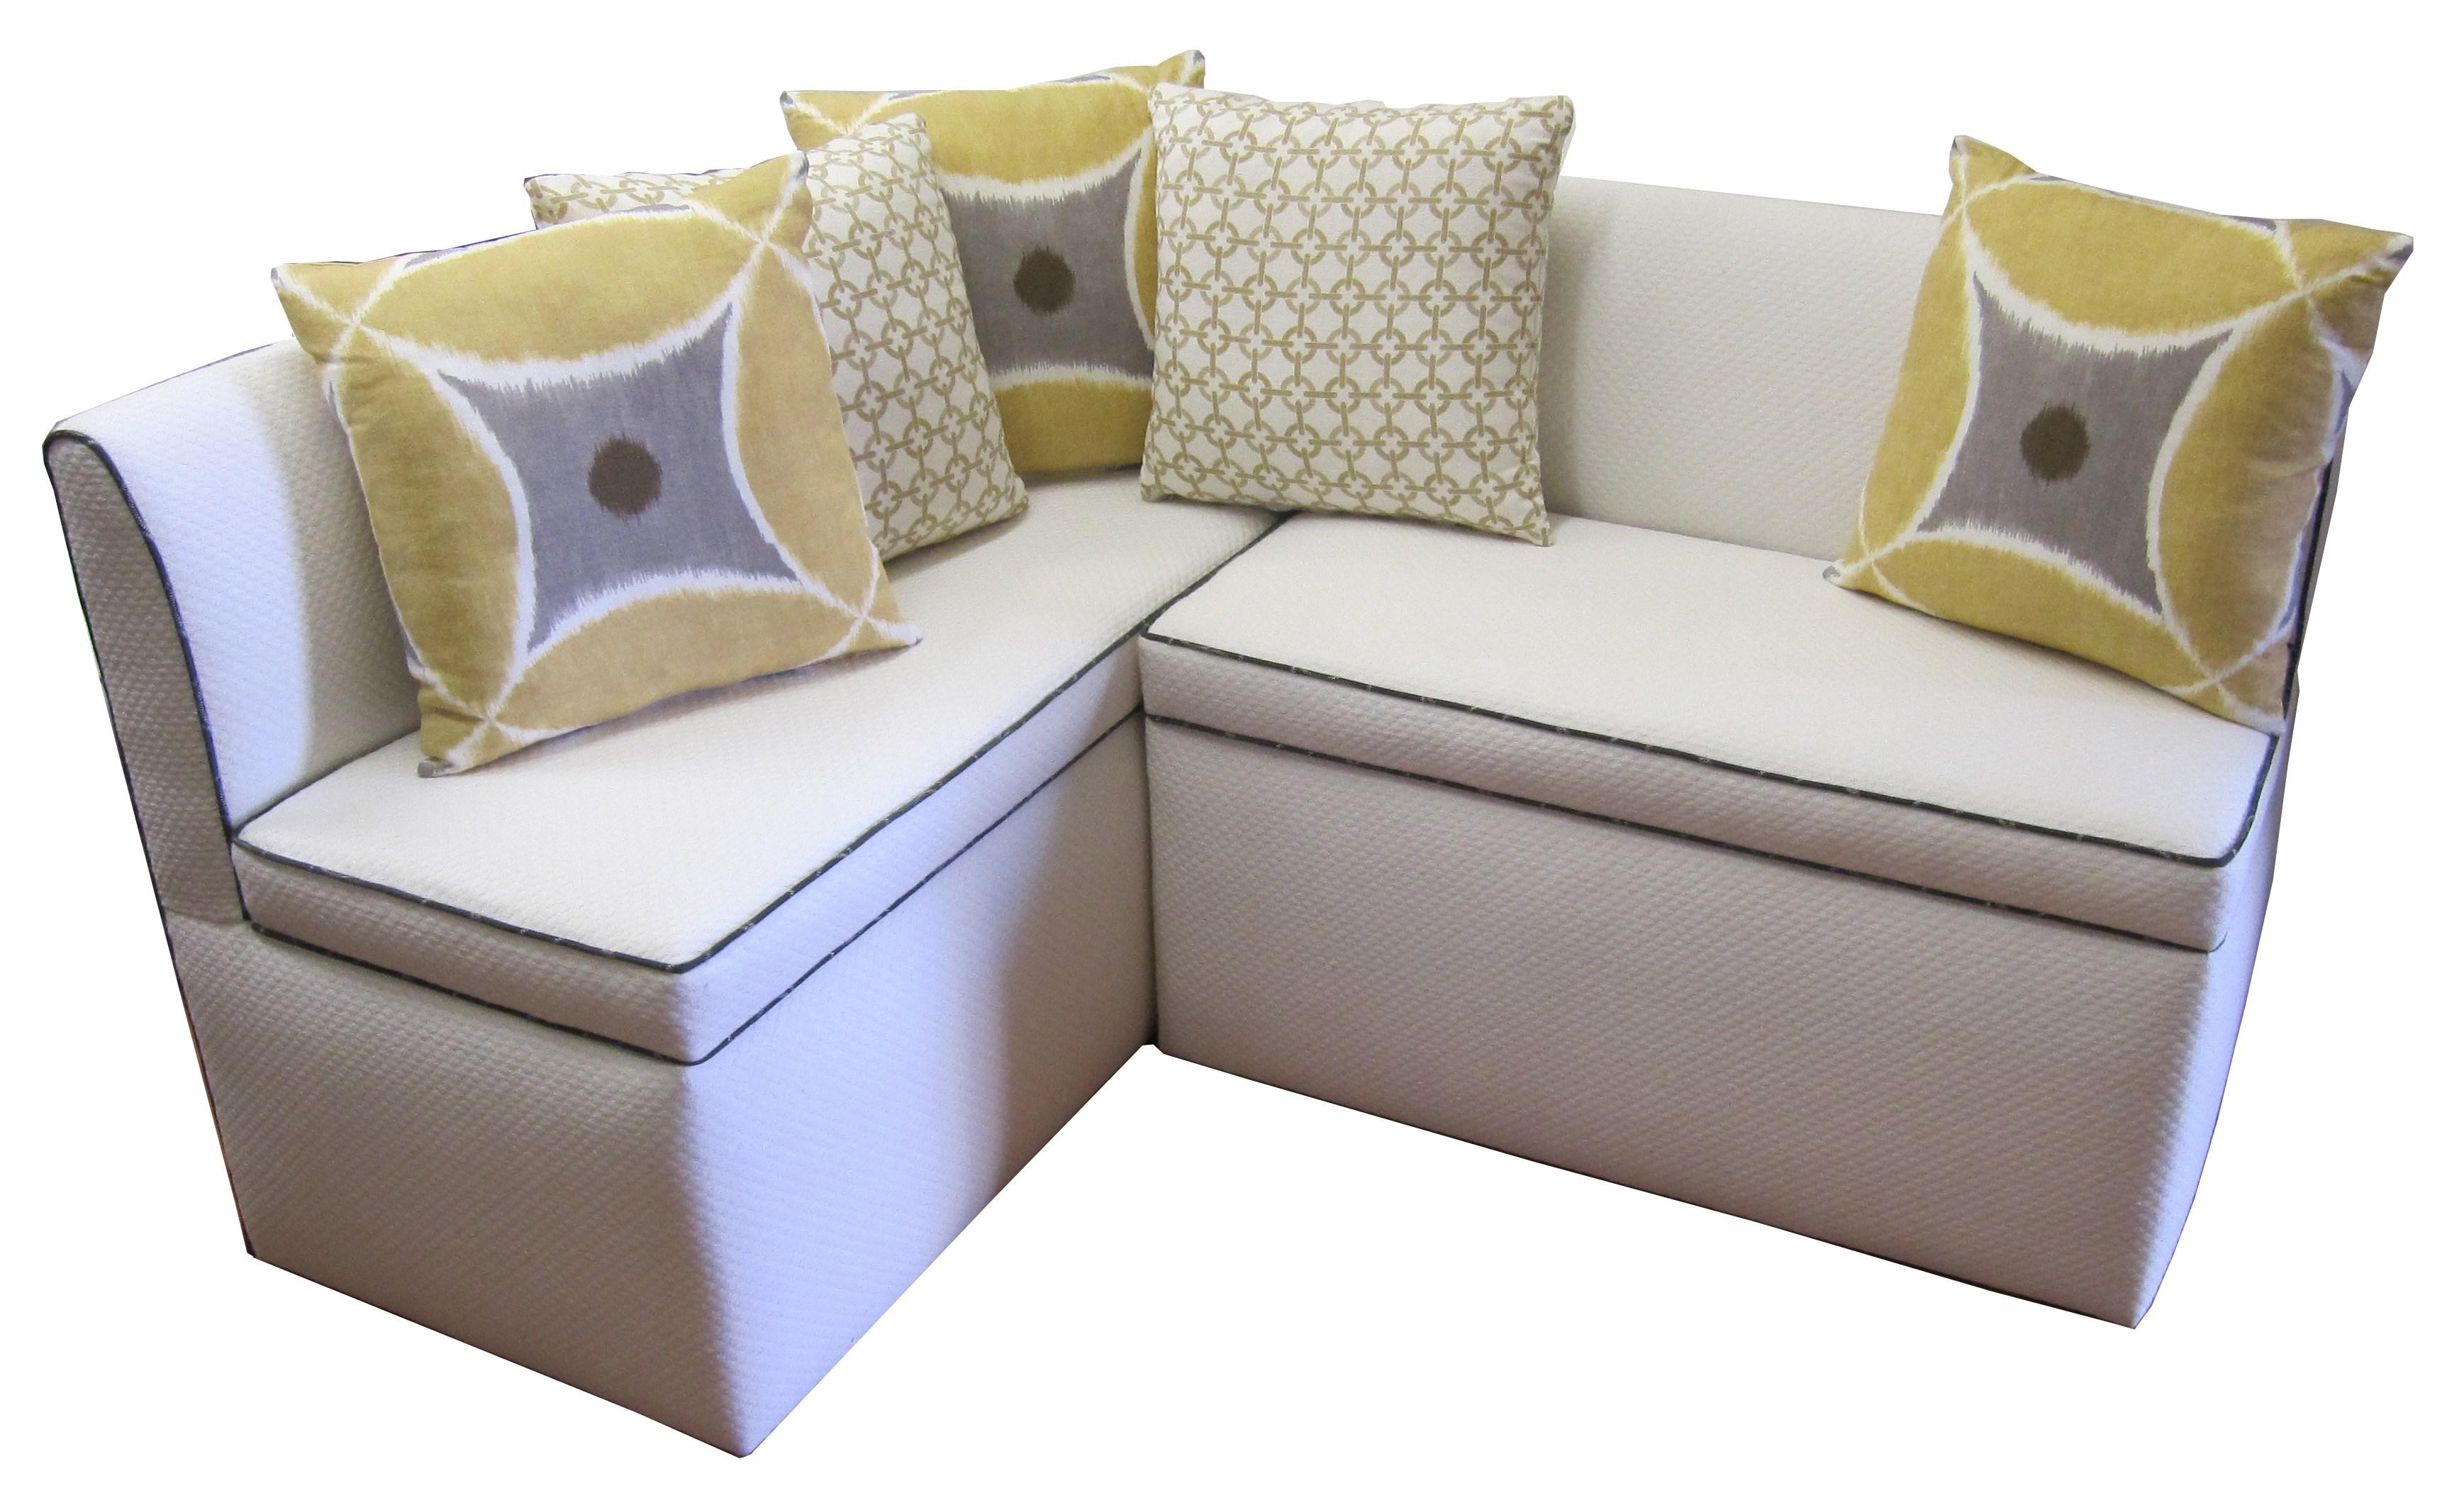 Bench Cushion Sofa With Concept Gallery 25269 | Kengire In Bench Cushion Sofas (View 9 of 20)